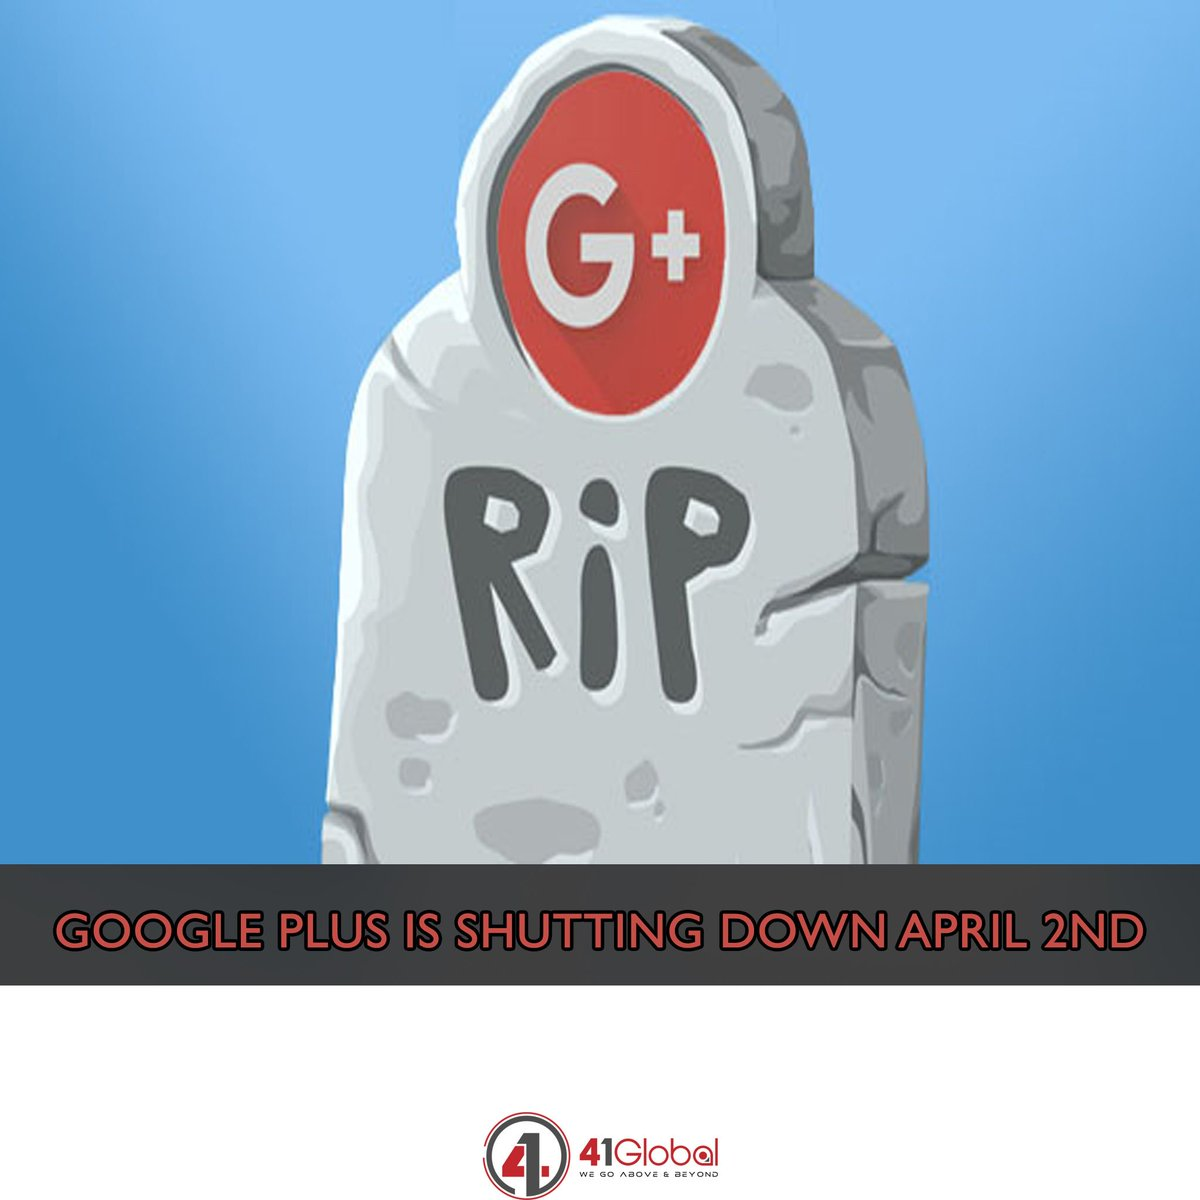 Reminder | On April 2nd, your Google+ account and any Google+ pages you created will be shut down and google will begin deleting content from consumer Google+ accounts.  #41Global #googleplus #google #ripgoogleplus #website #webdevelopment #marketing101 #webdesign